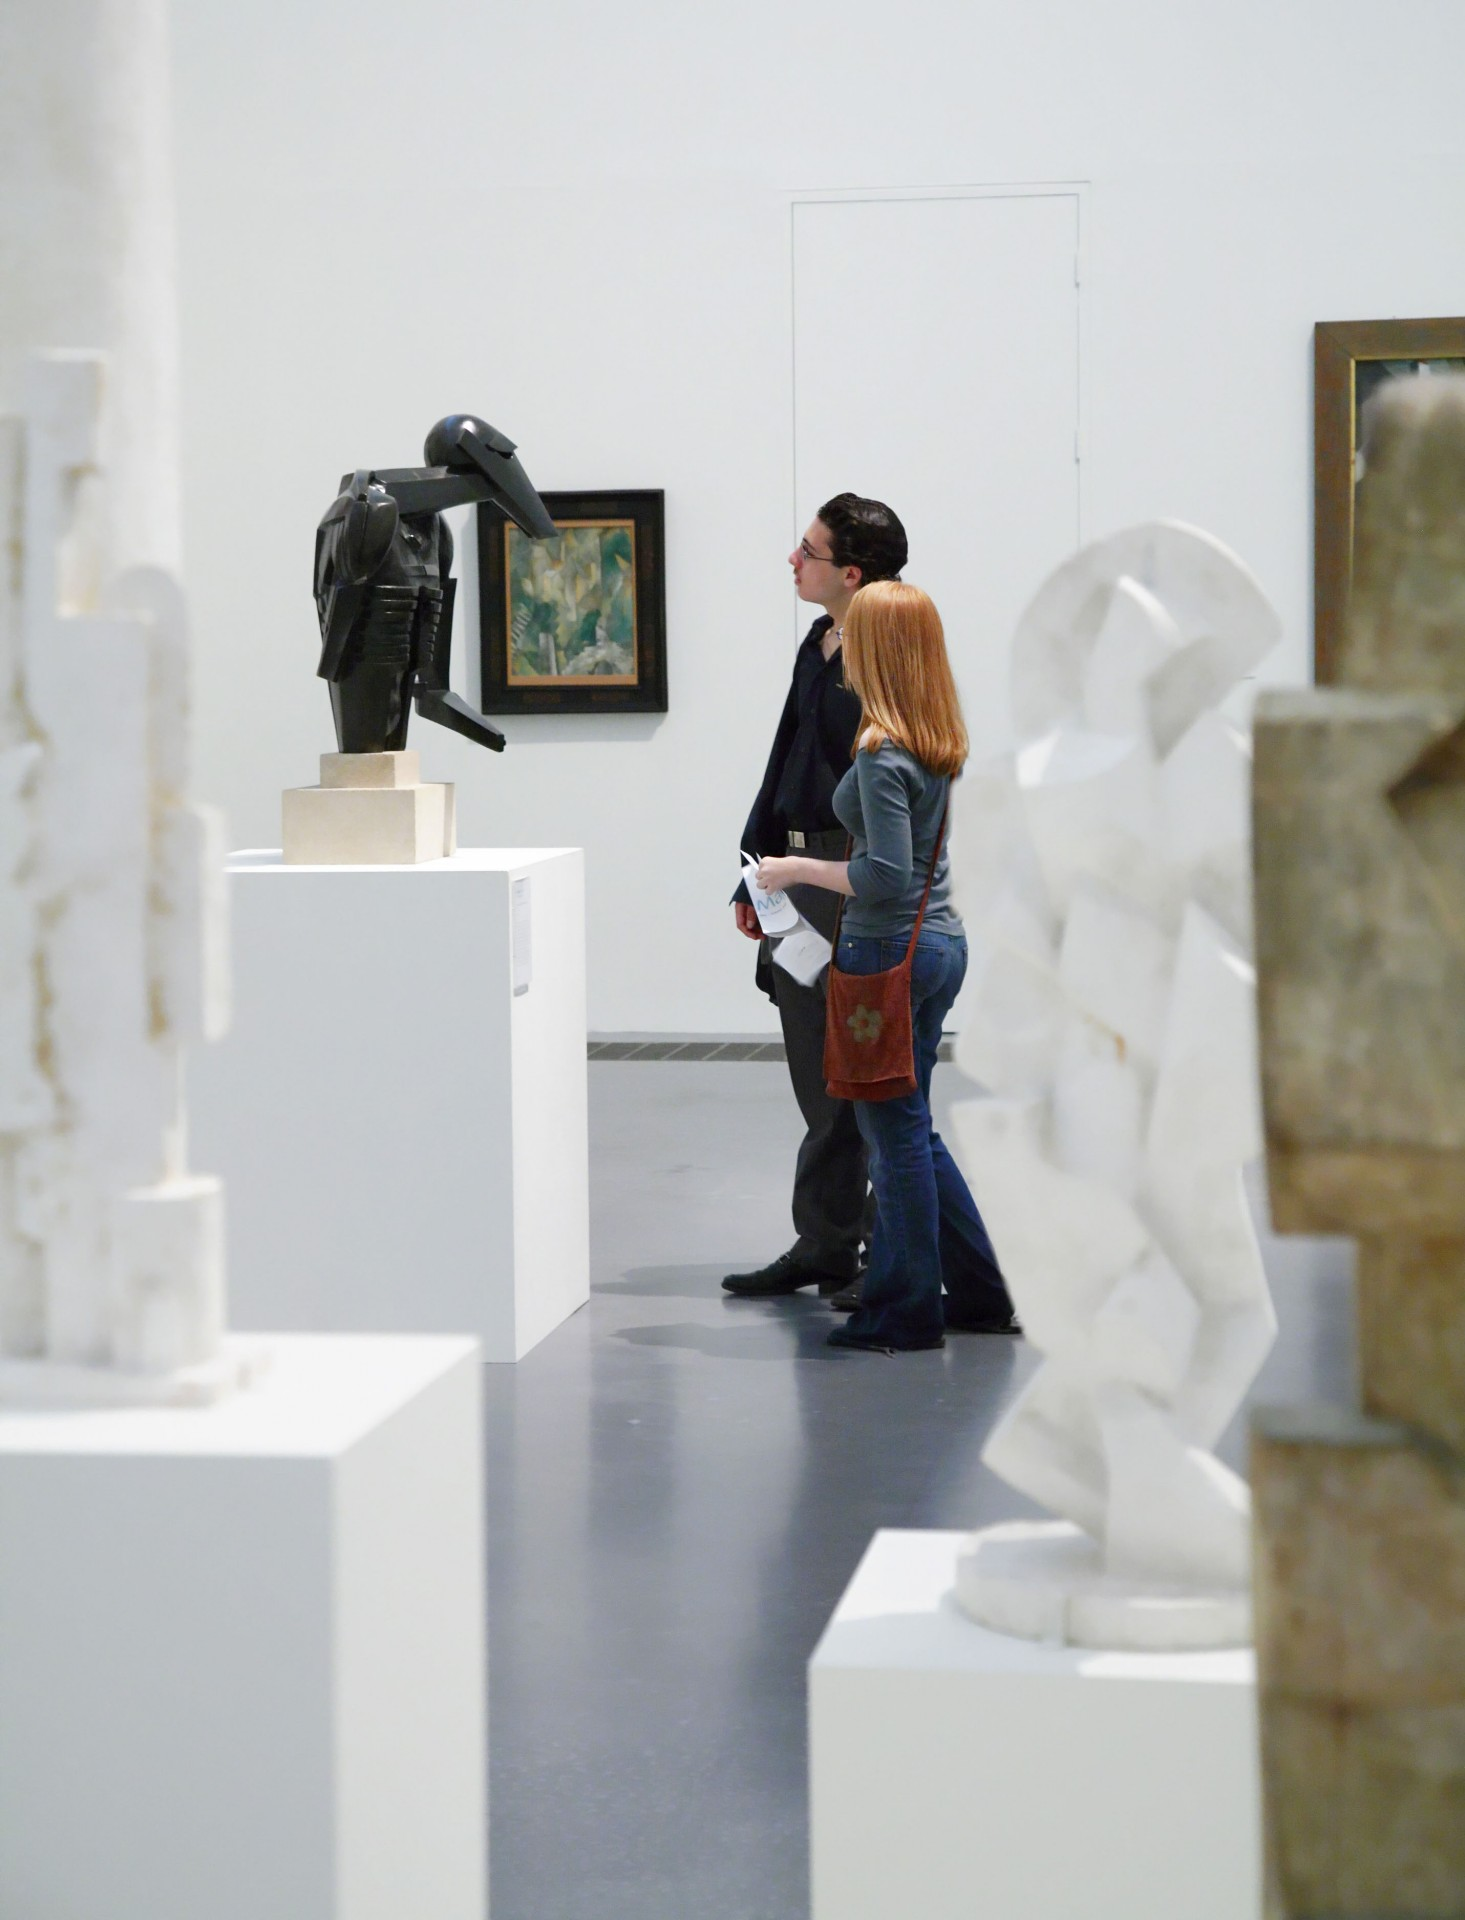 Couple looking at sculpture in the Tate Modern gallery, the national collection of modern and contemporary art housed in a former power station at Bankside, London.